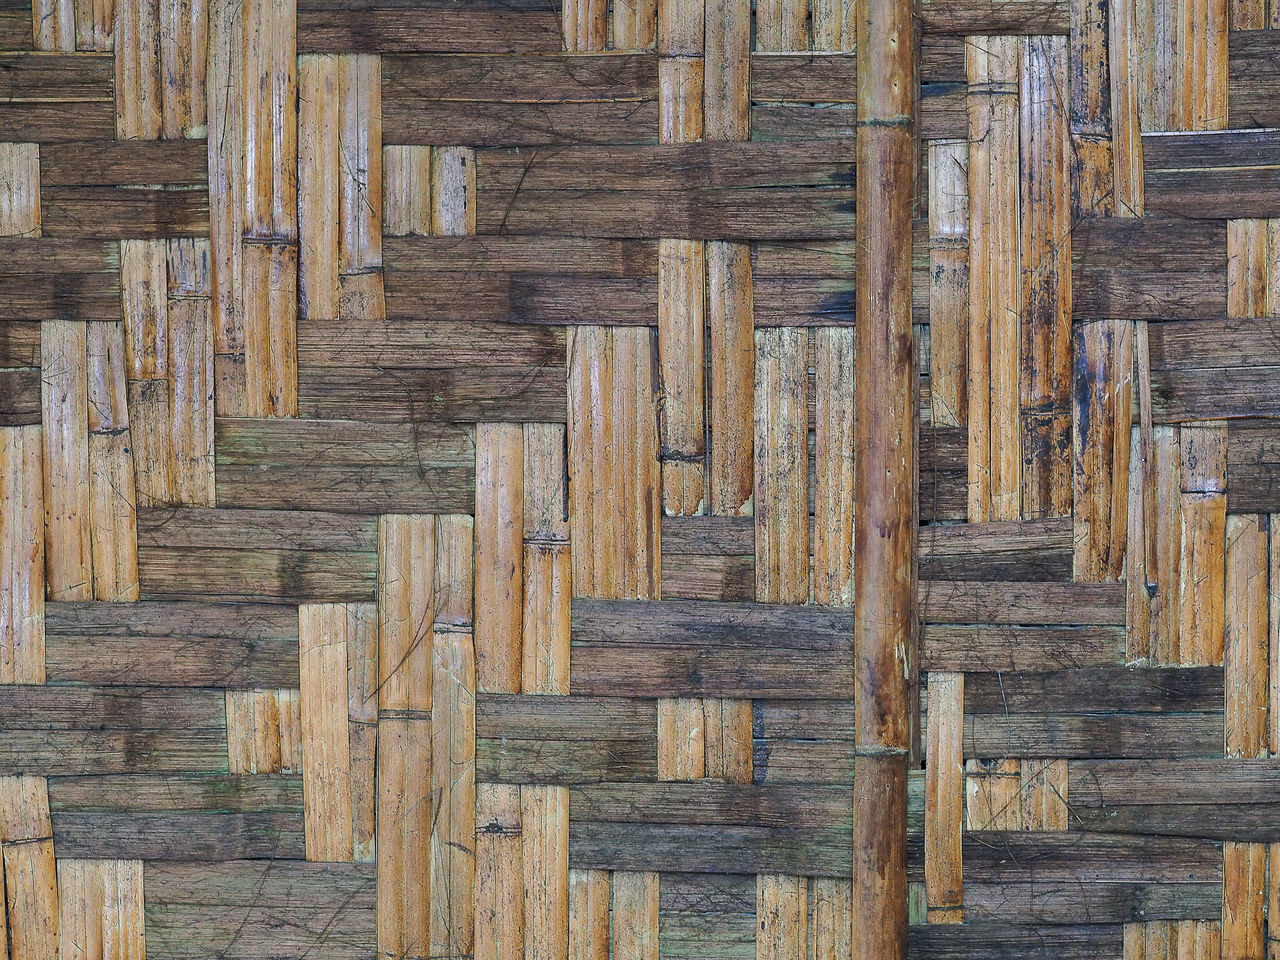 wood - material, backgrounds, timber, pattern, full frame, architecture, in a row, textured, hardwood floor, built structure, no people, wood grain, indoors, wood paneling, close-up, day, nature